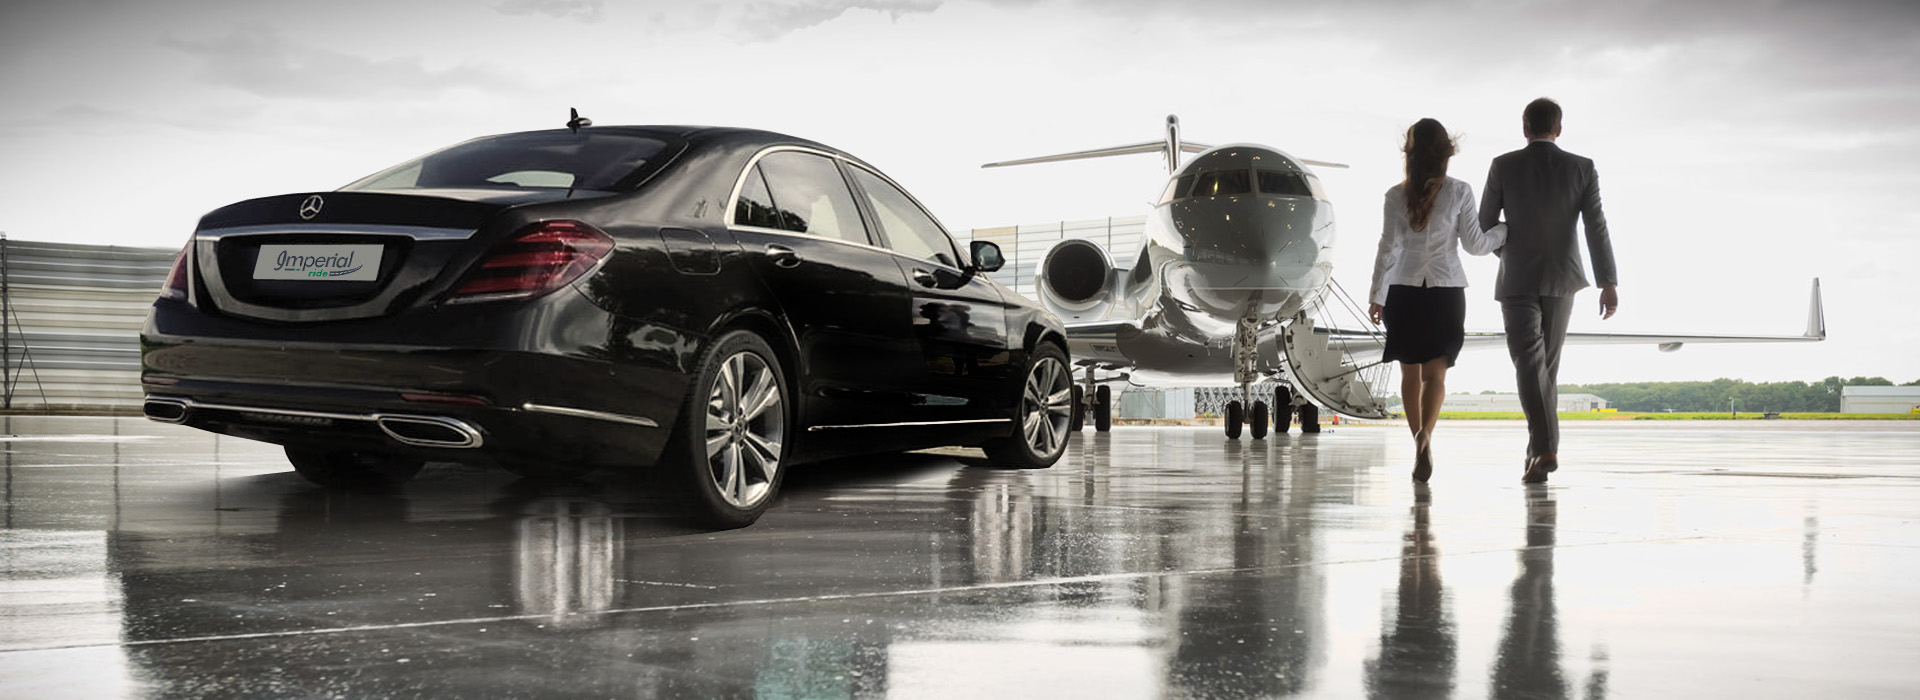 banner-london-airport-transfers